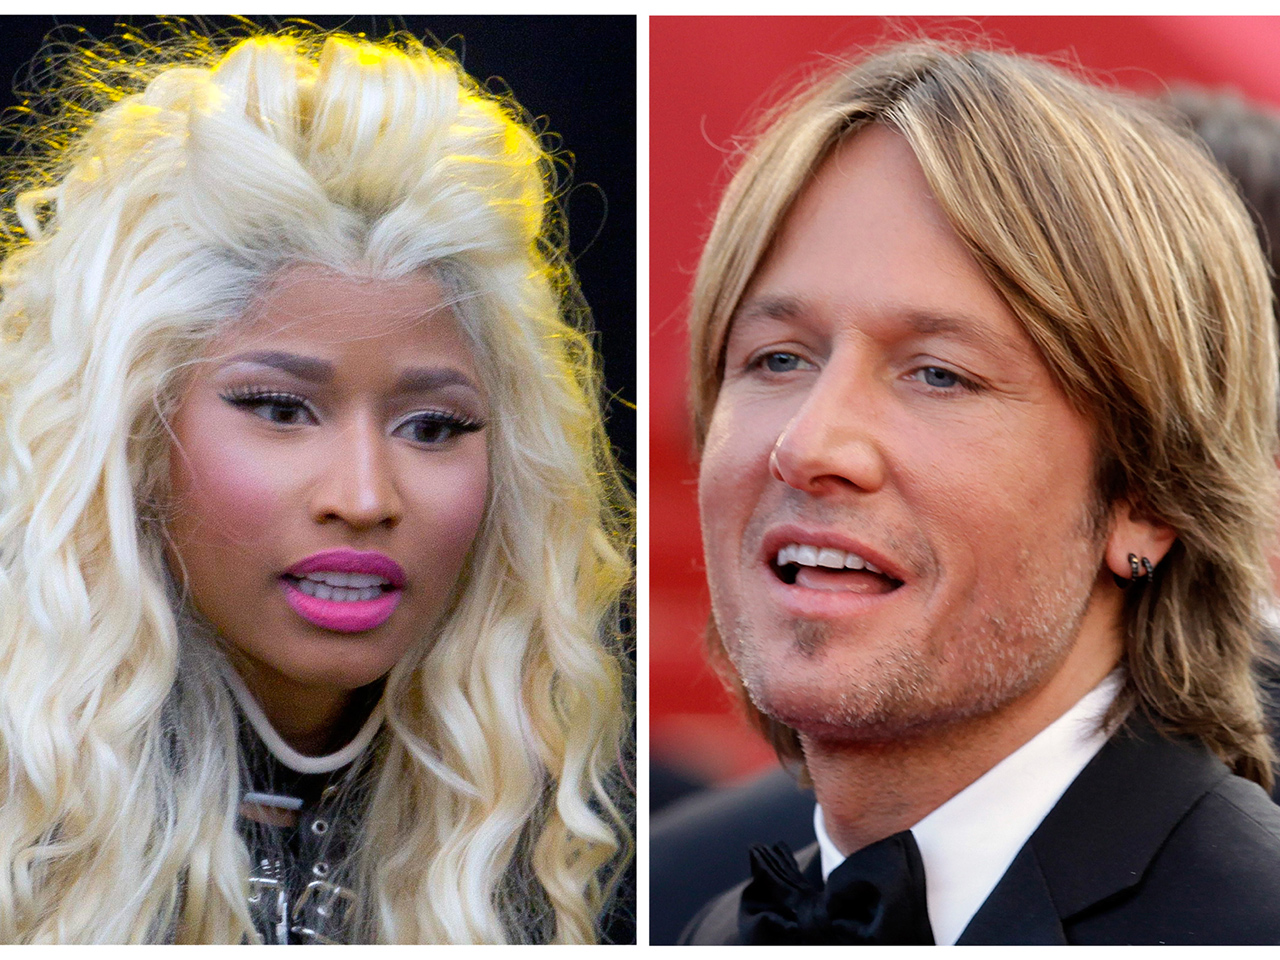 American idol judges nicki minaj